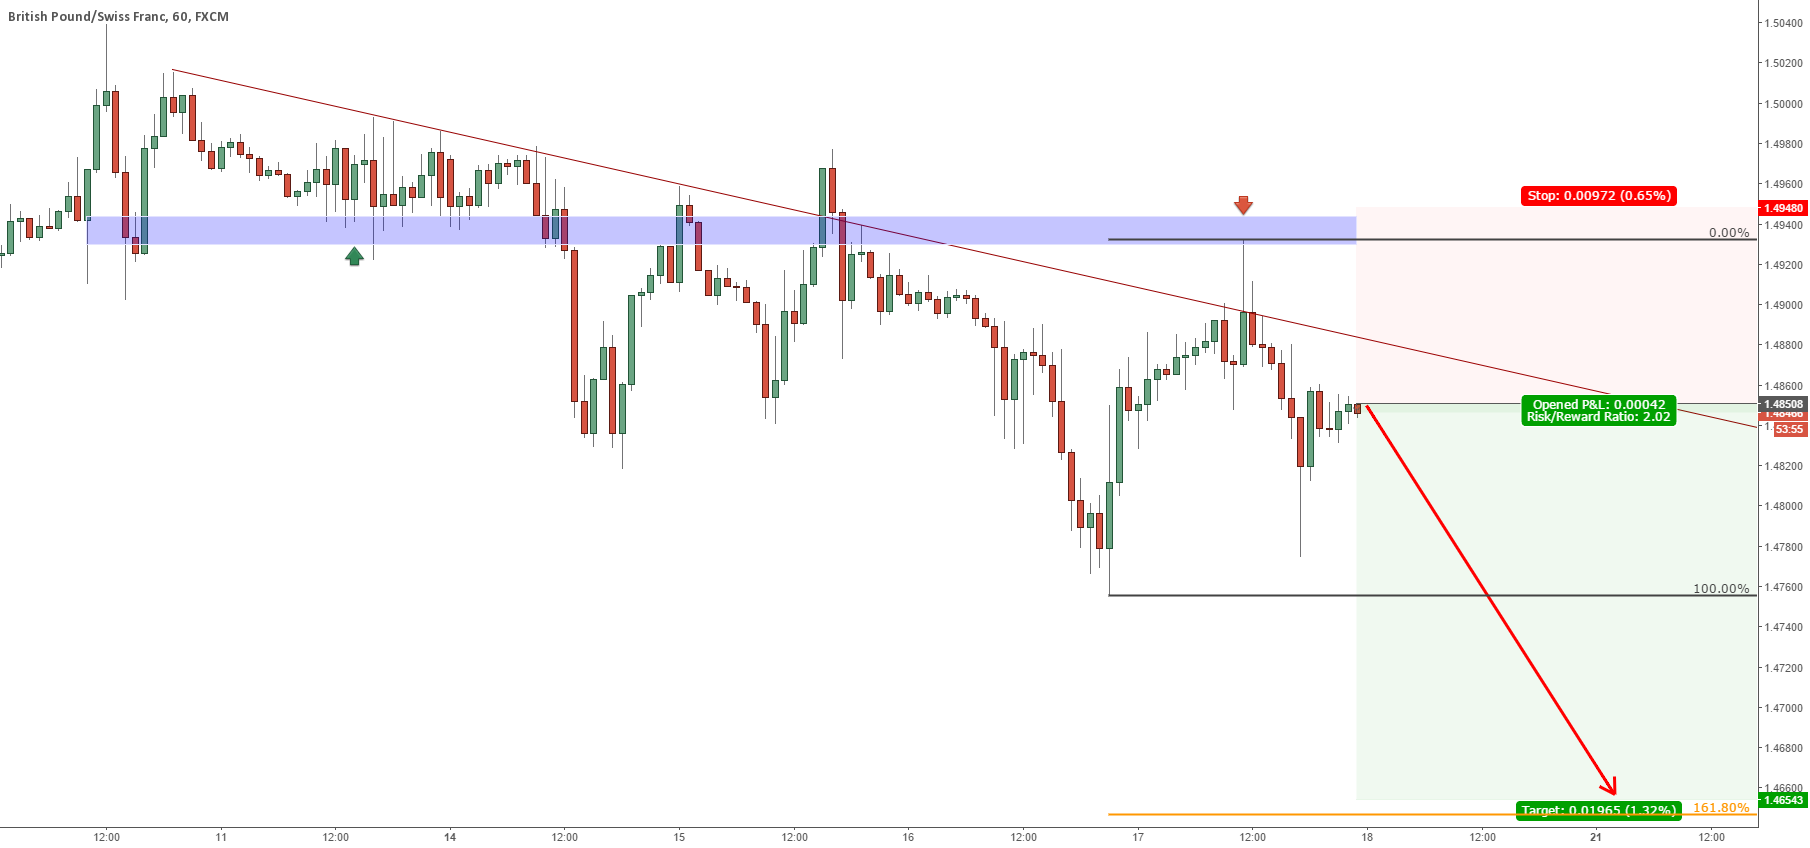 GBPCHF THE FALL CONTINUES